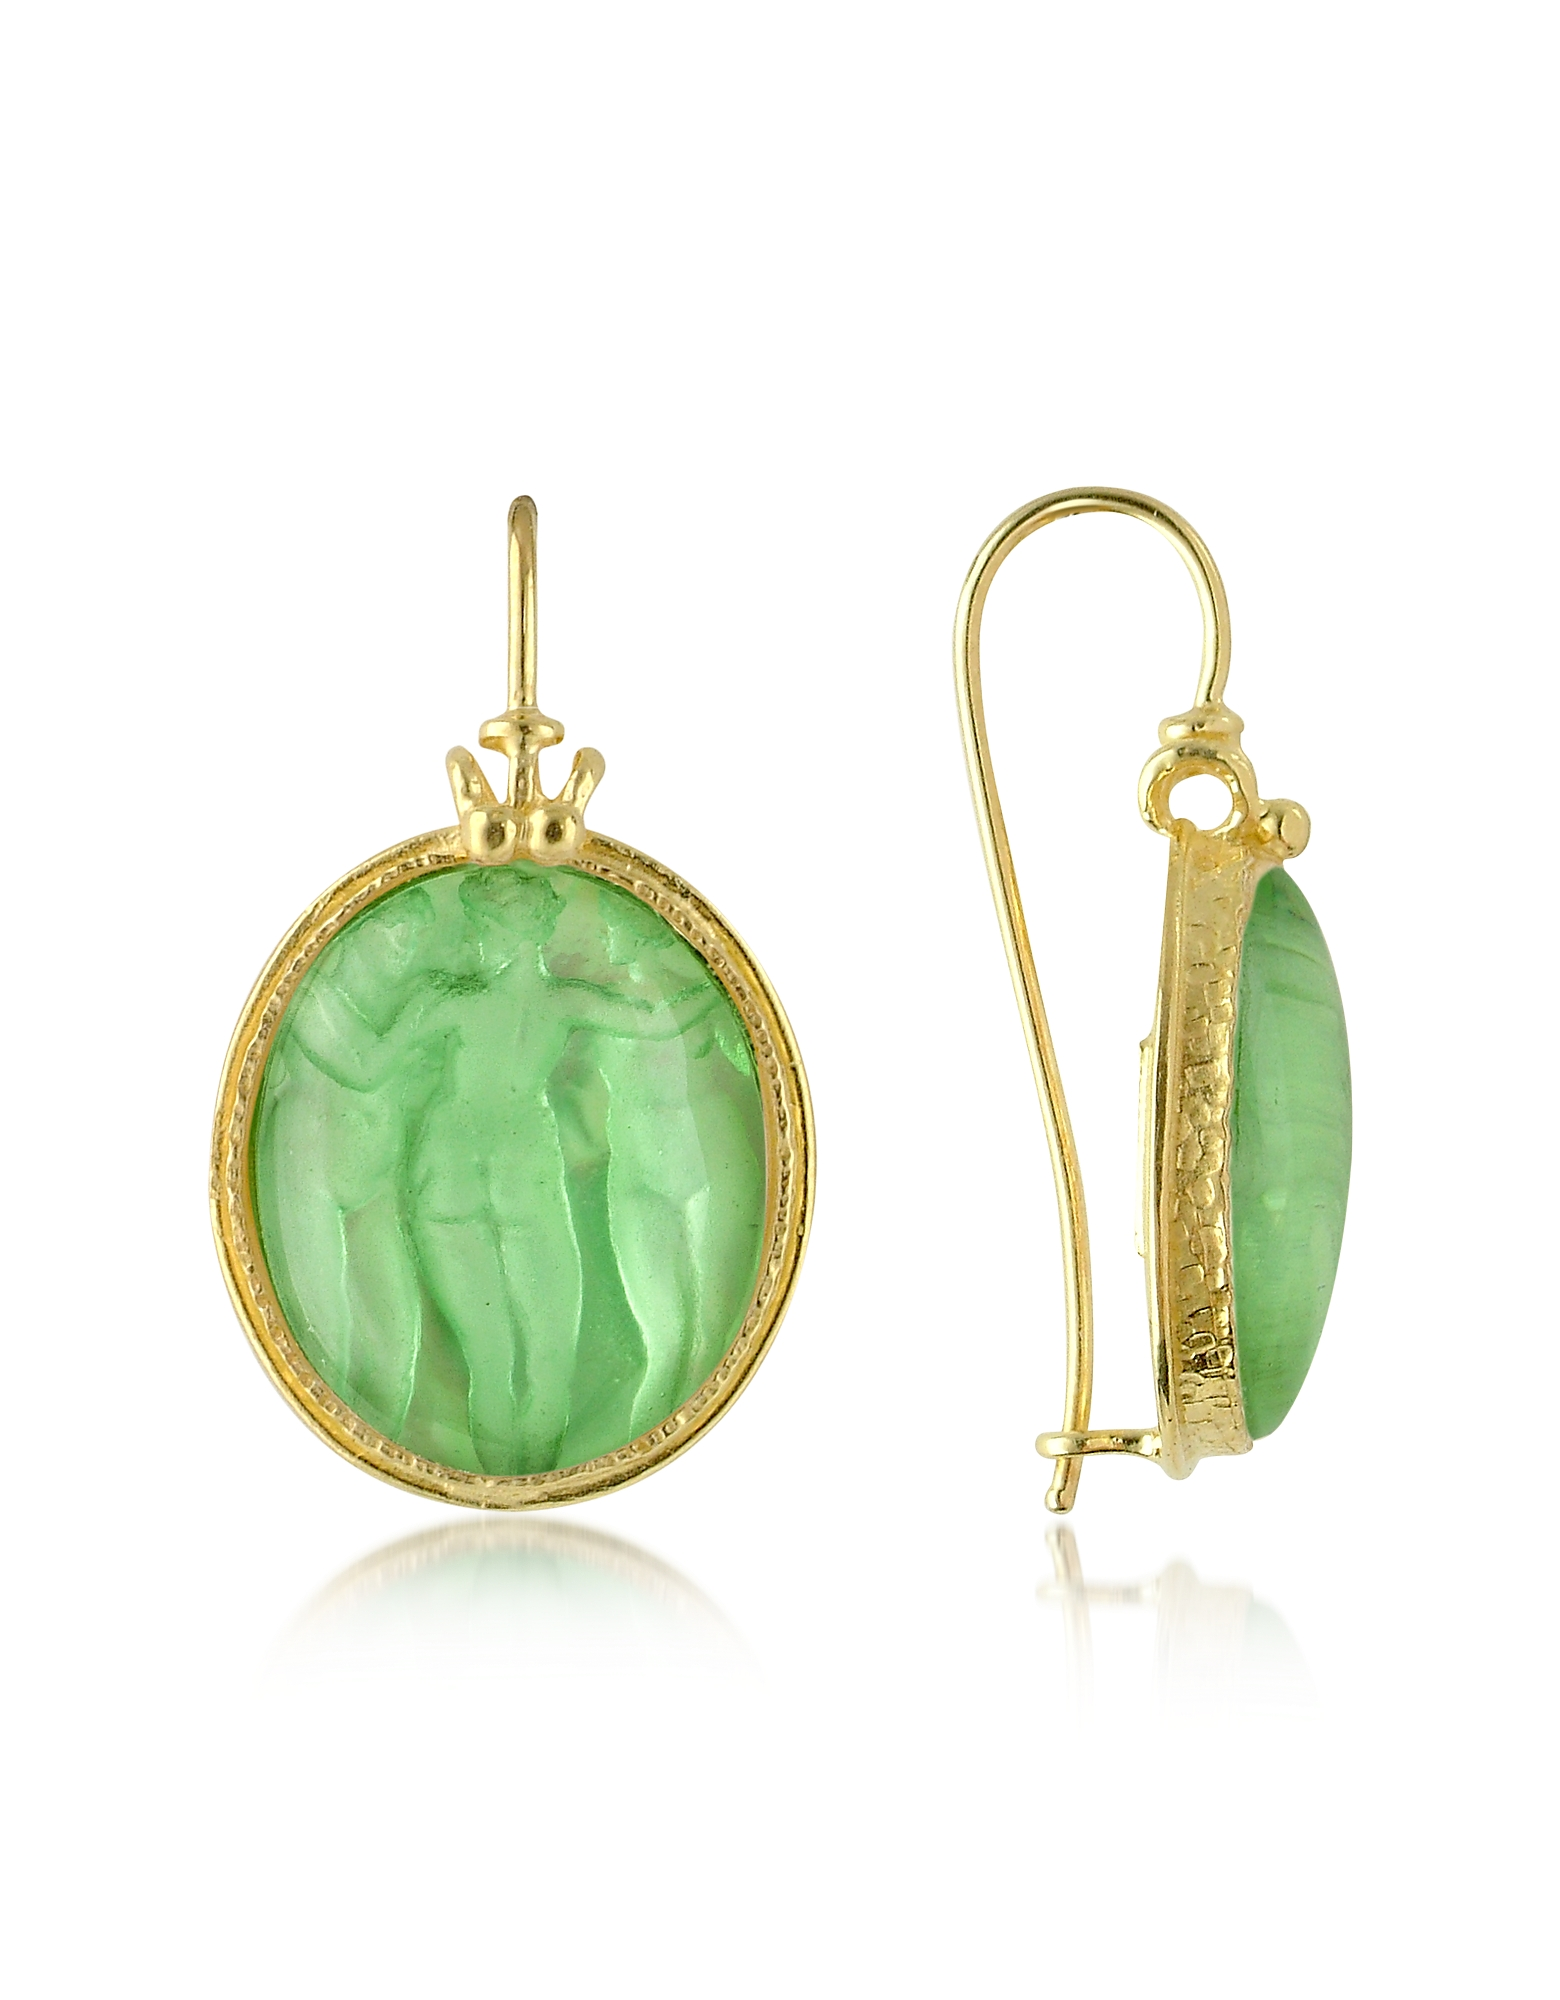 Tagliamonte Designer Cameo, Three Graces - 18K Gold Mother of Pearl Cameo Earrings